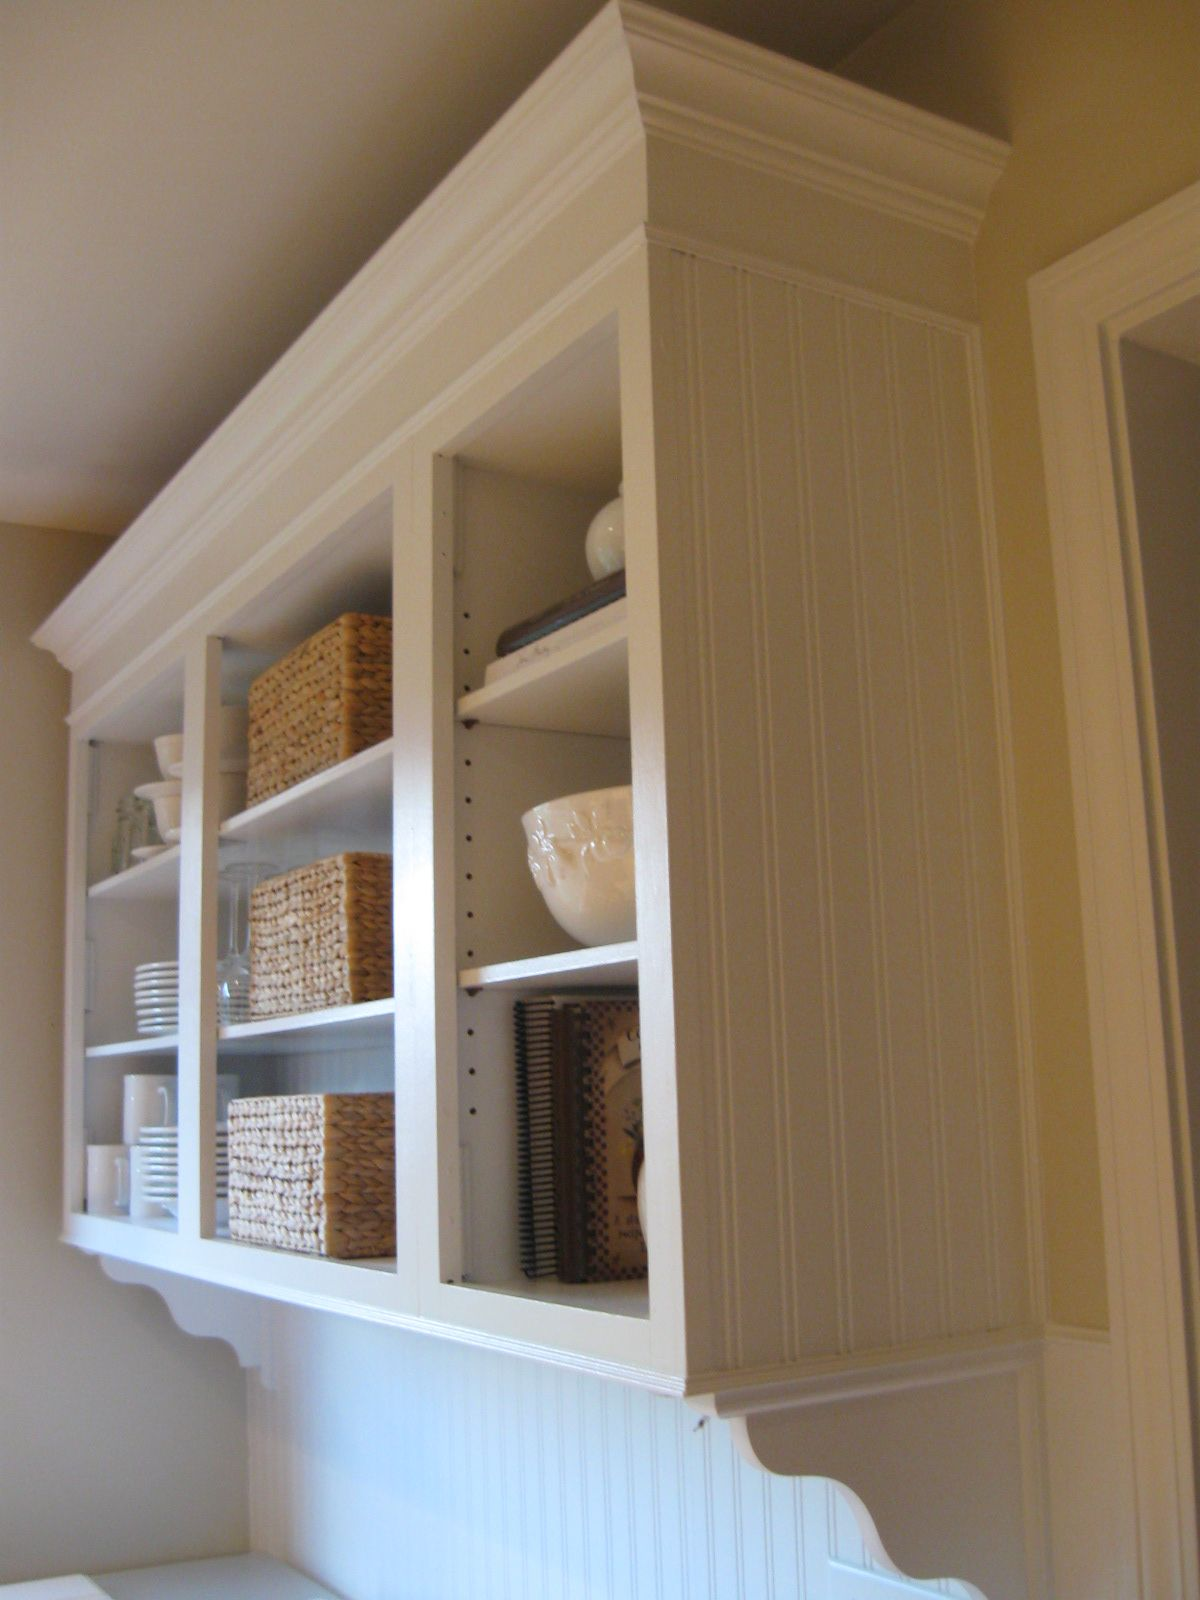 Beadboard On Cabinets Kitchen Cabinet Crown Molding Crown Molding Kitchen Beadboard Kitchen